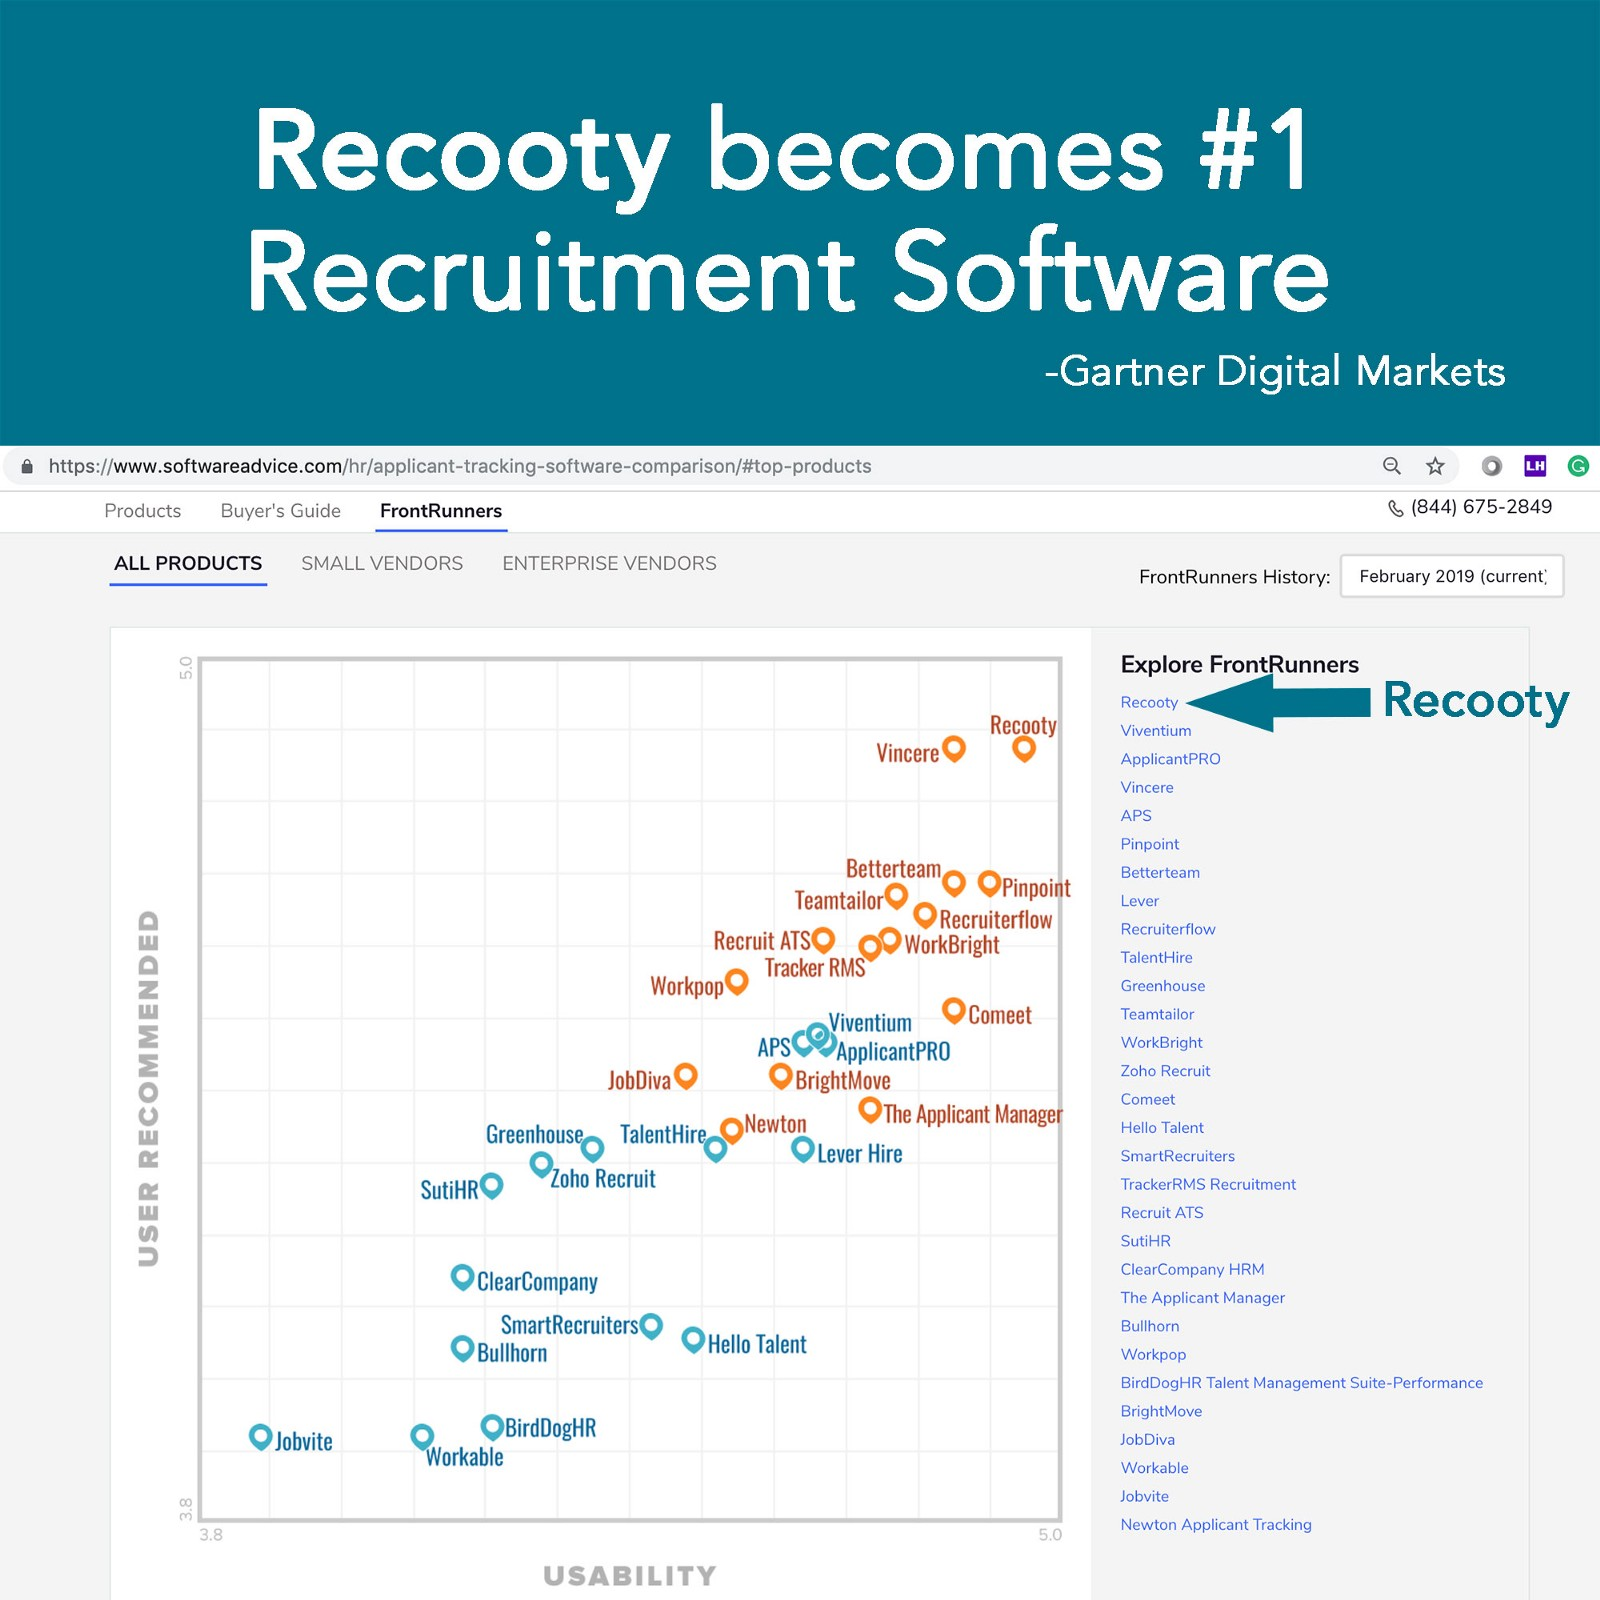 gartner rate recooty no  1 recruitment software vendor